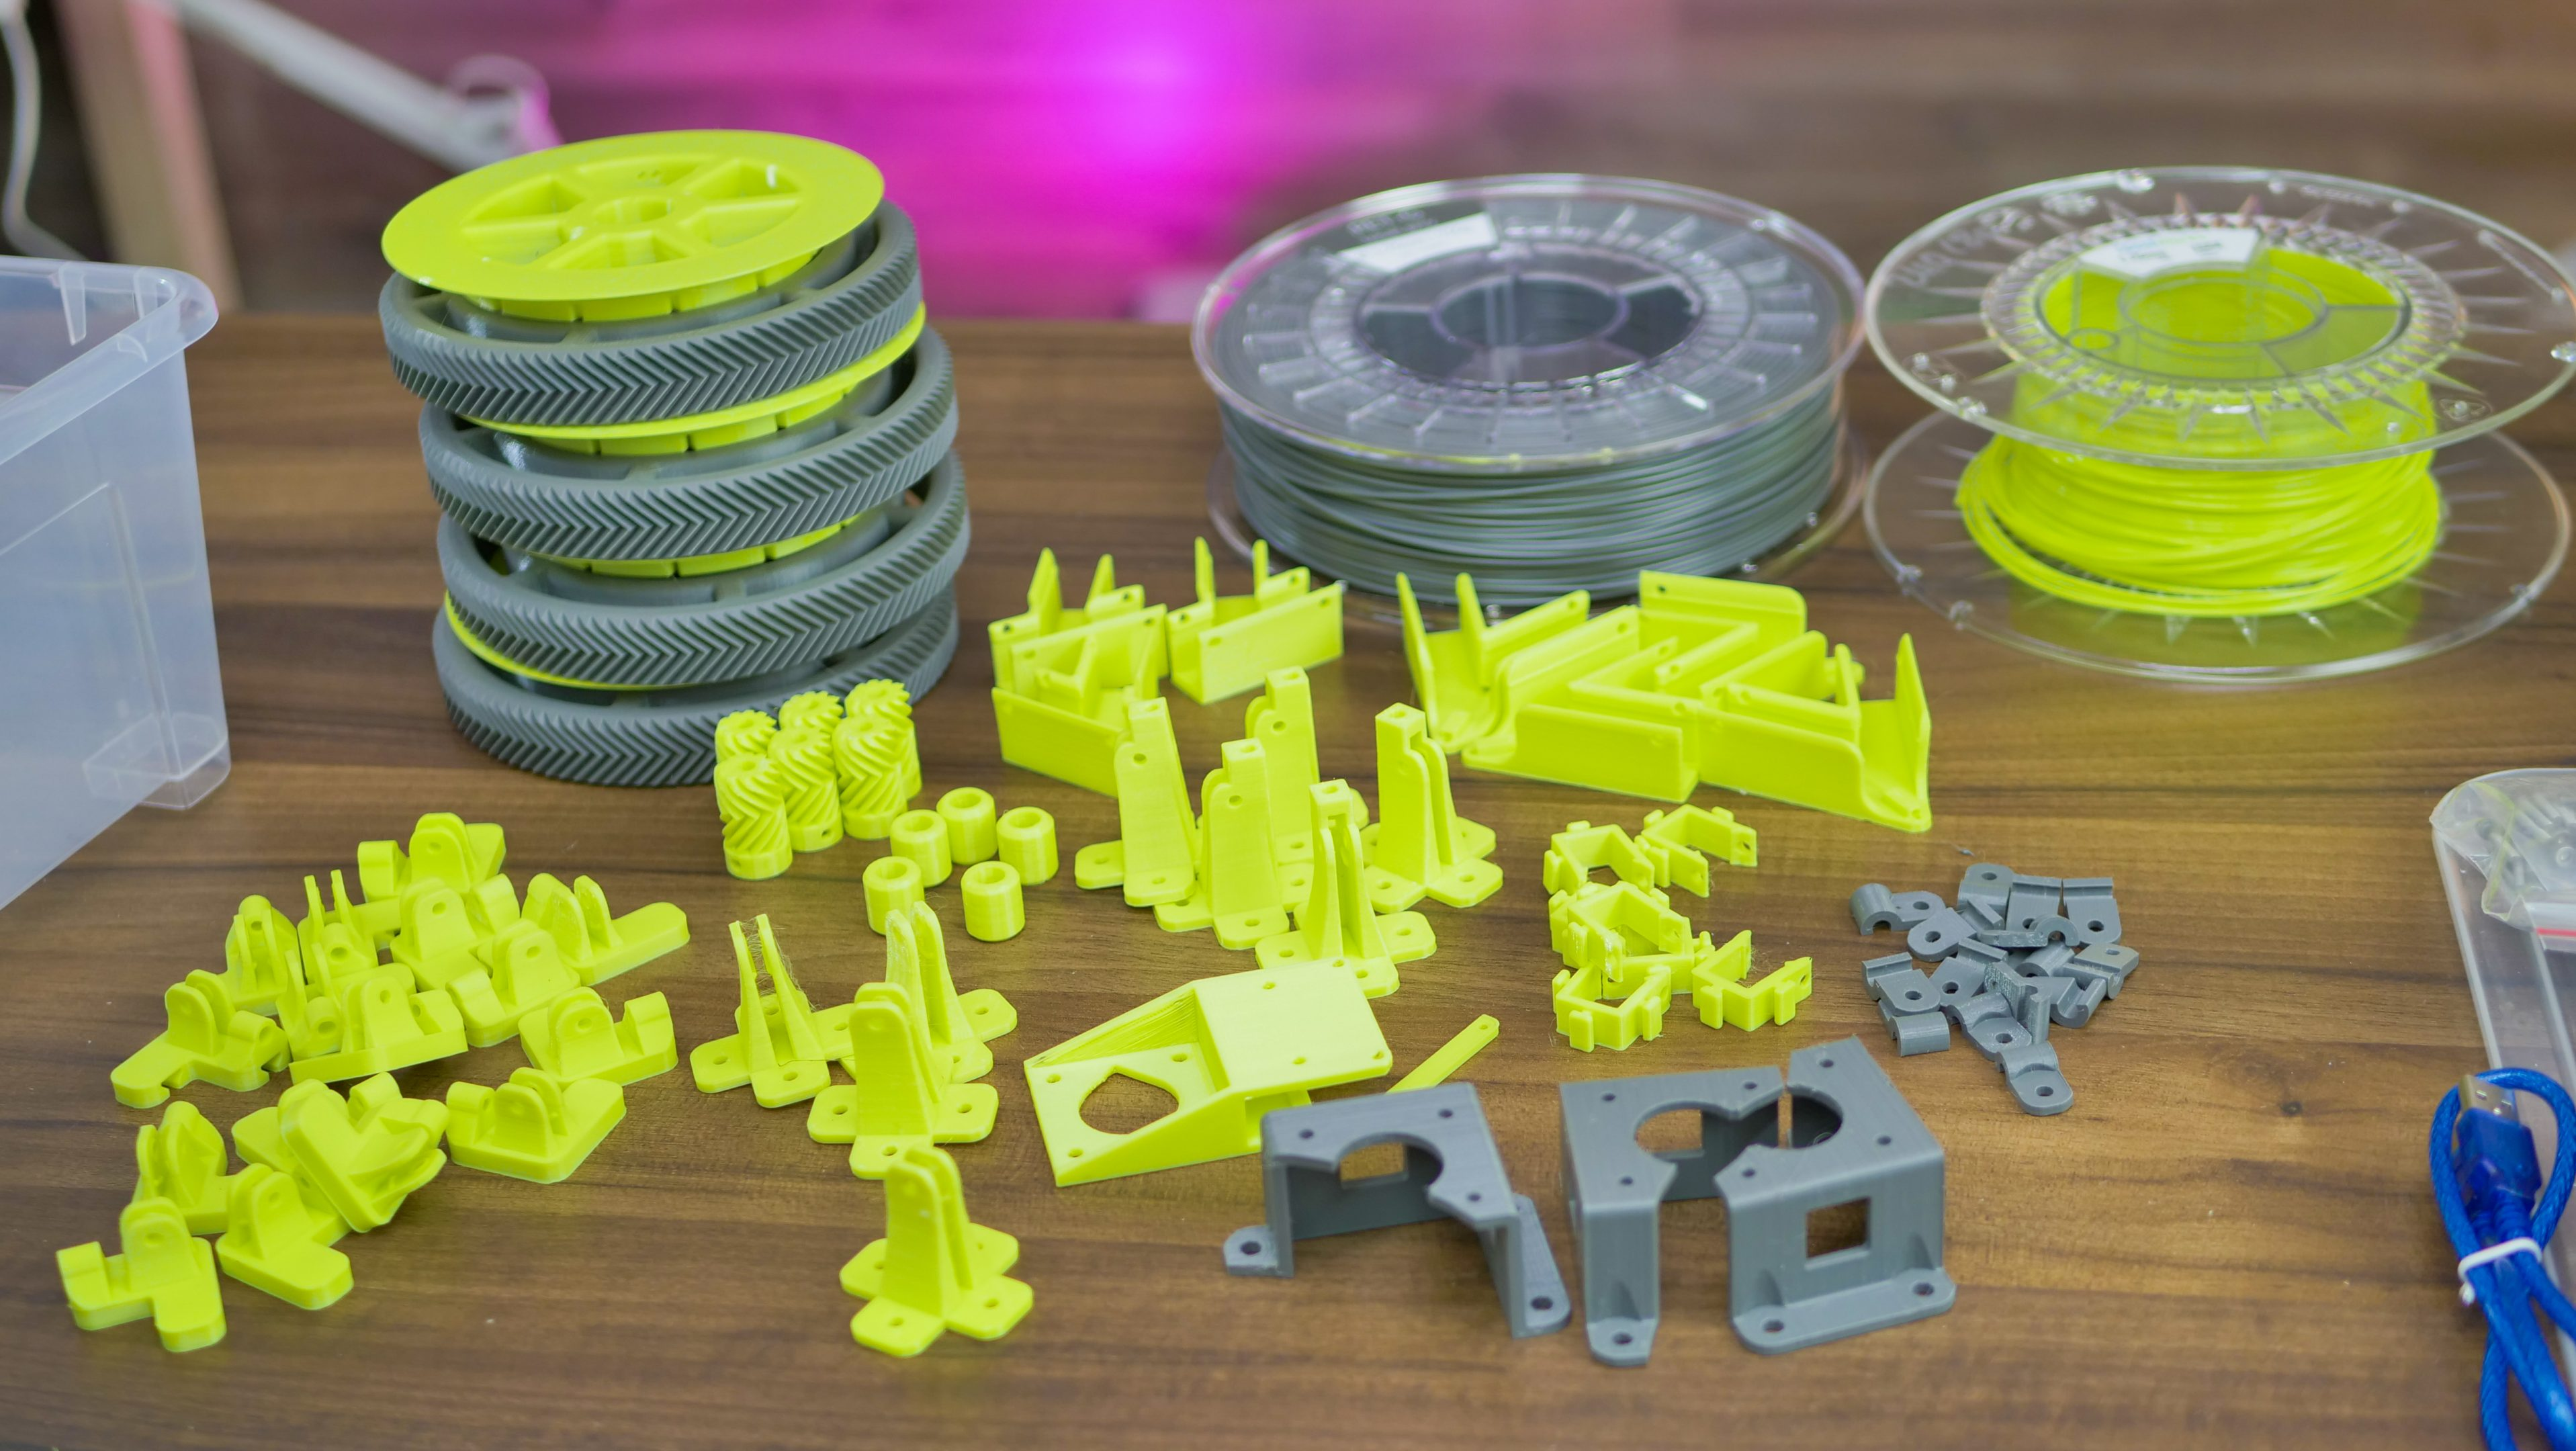 Printed parts for the Hangprinter